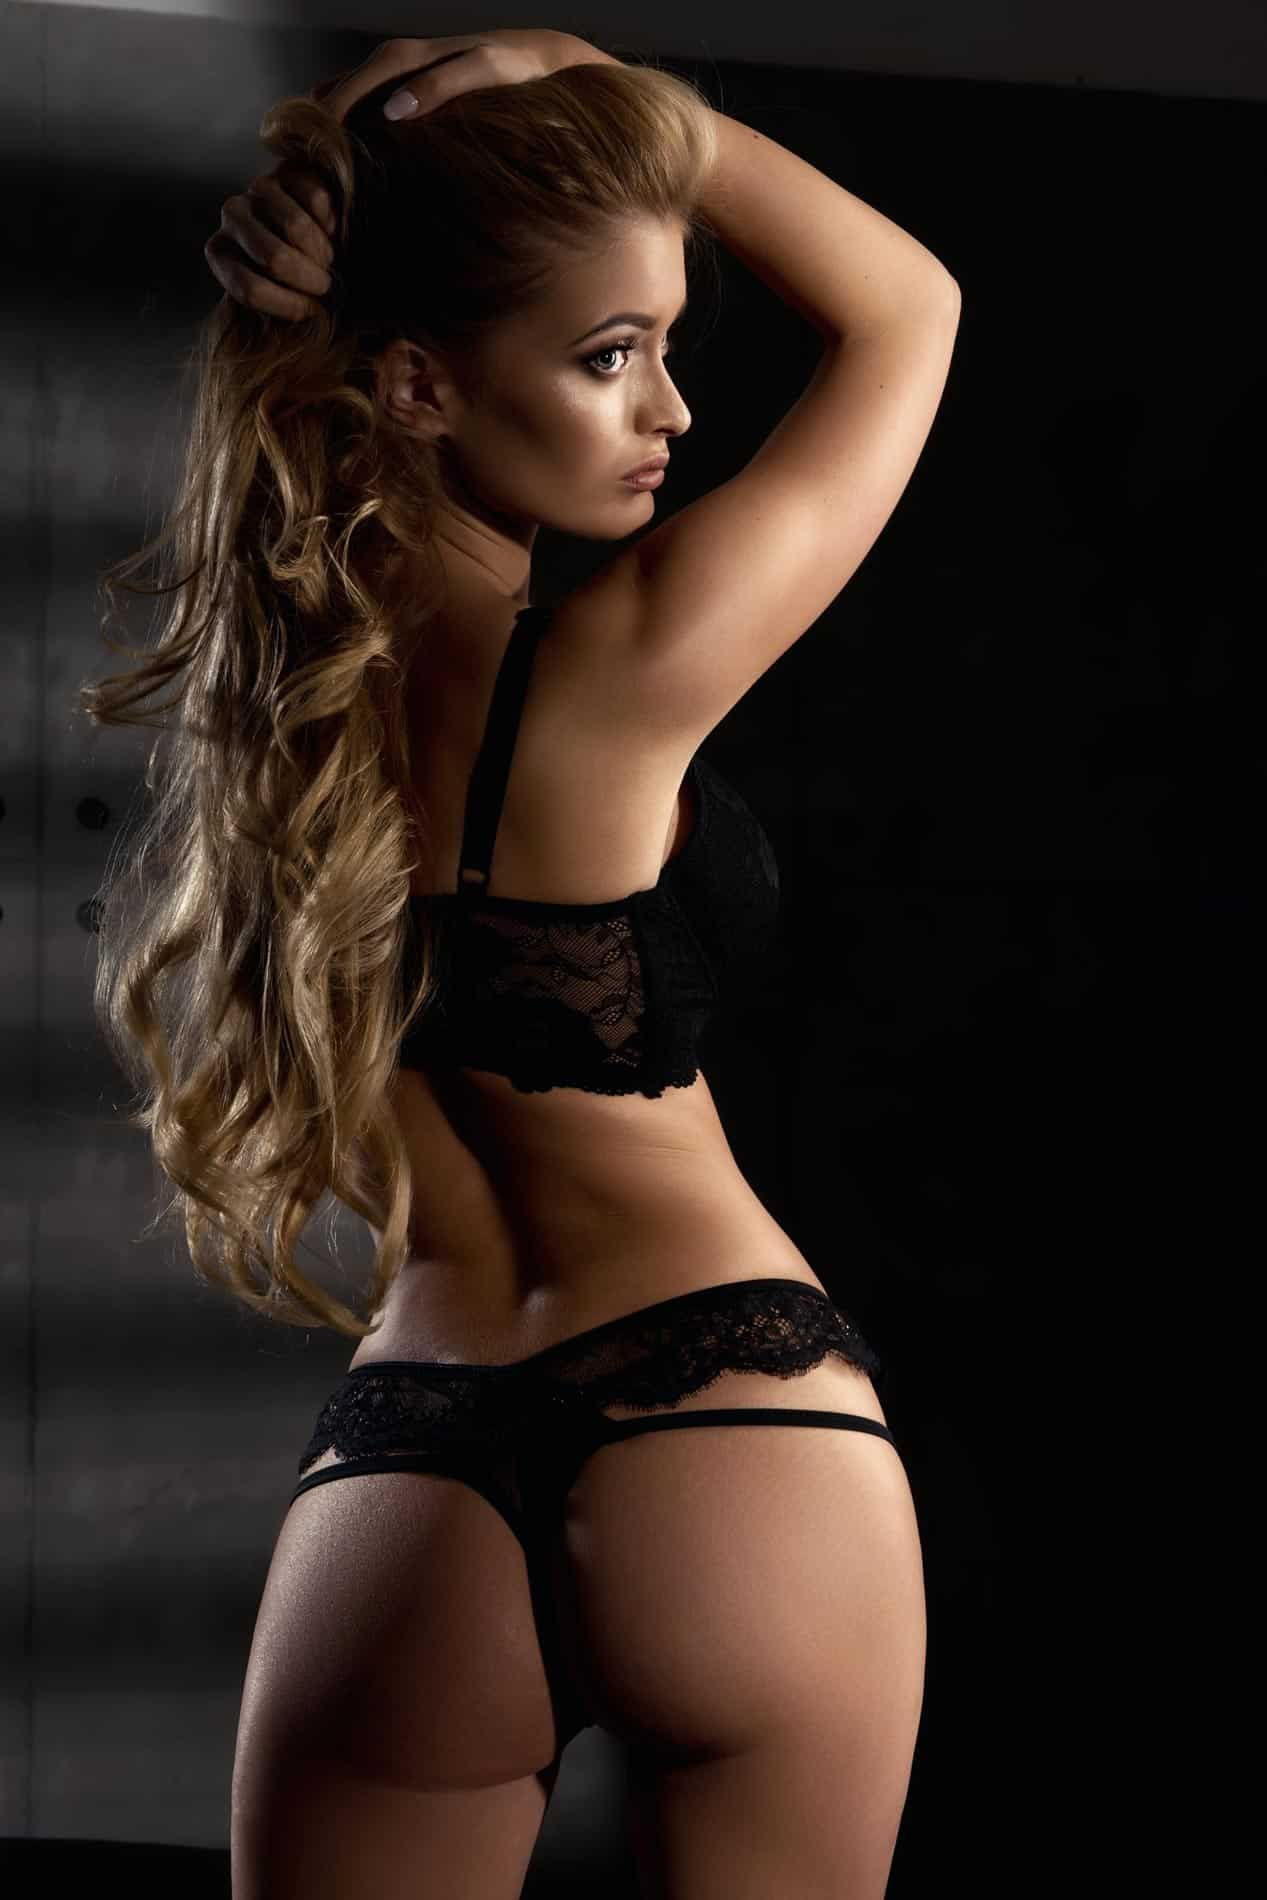 Bollywood Actress Escorts Provides Hottest & Sexiest Girl